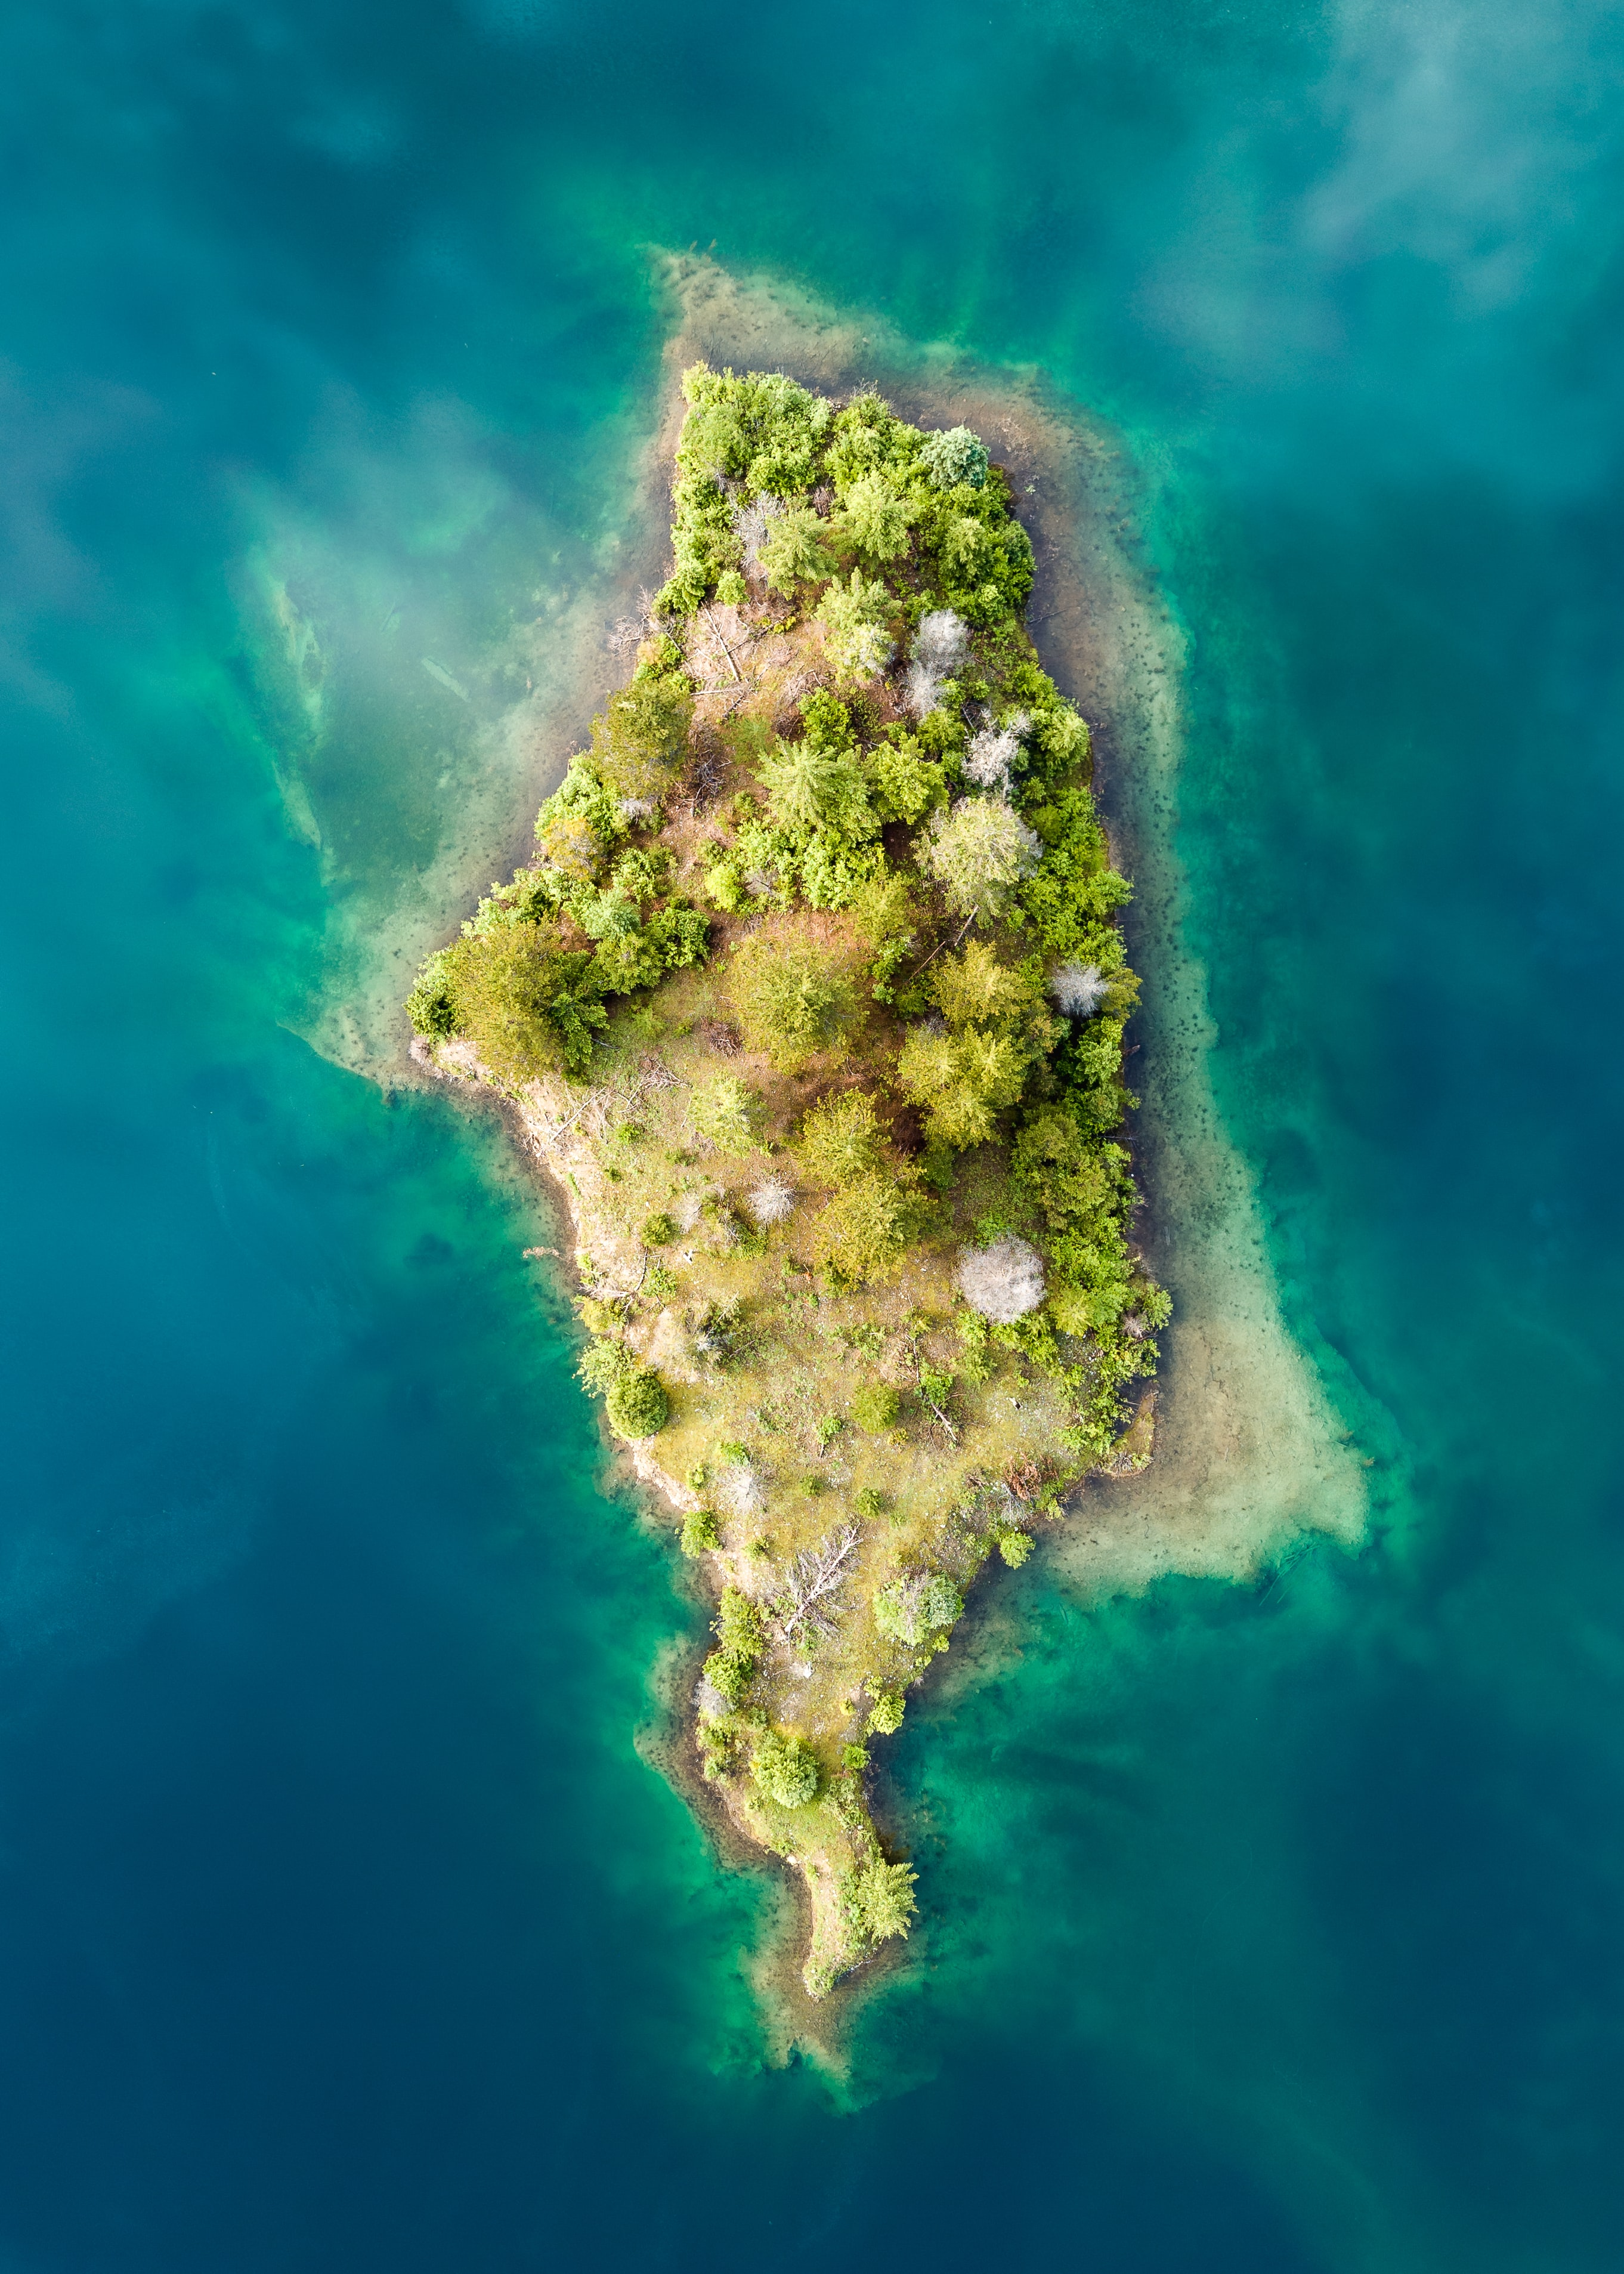 bird's eye view of islet